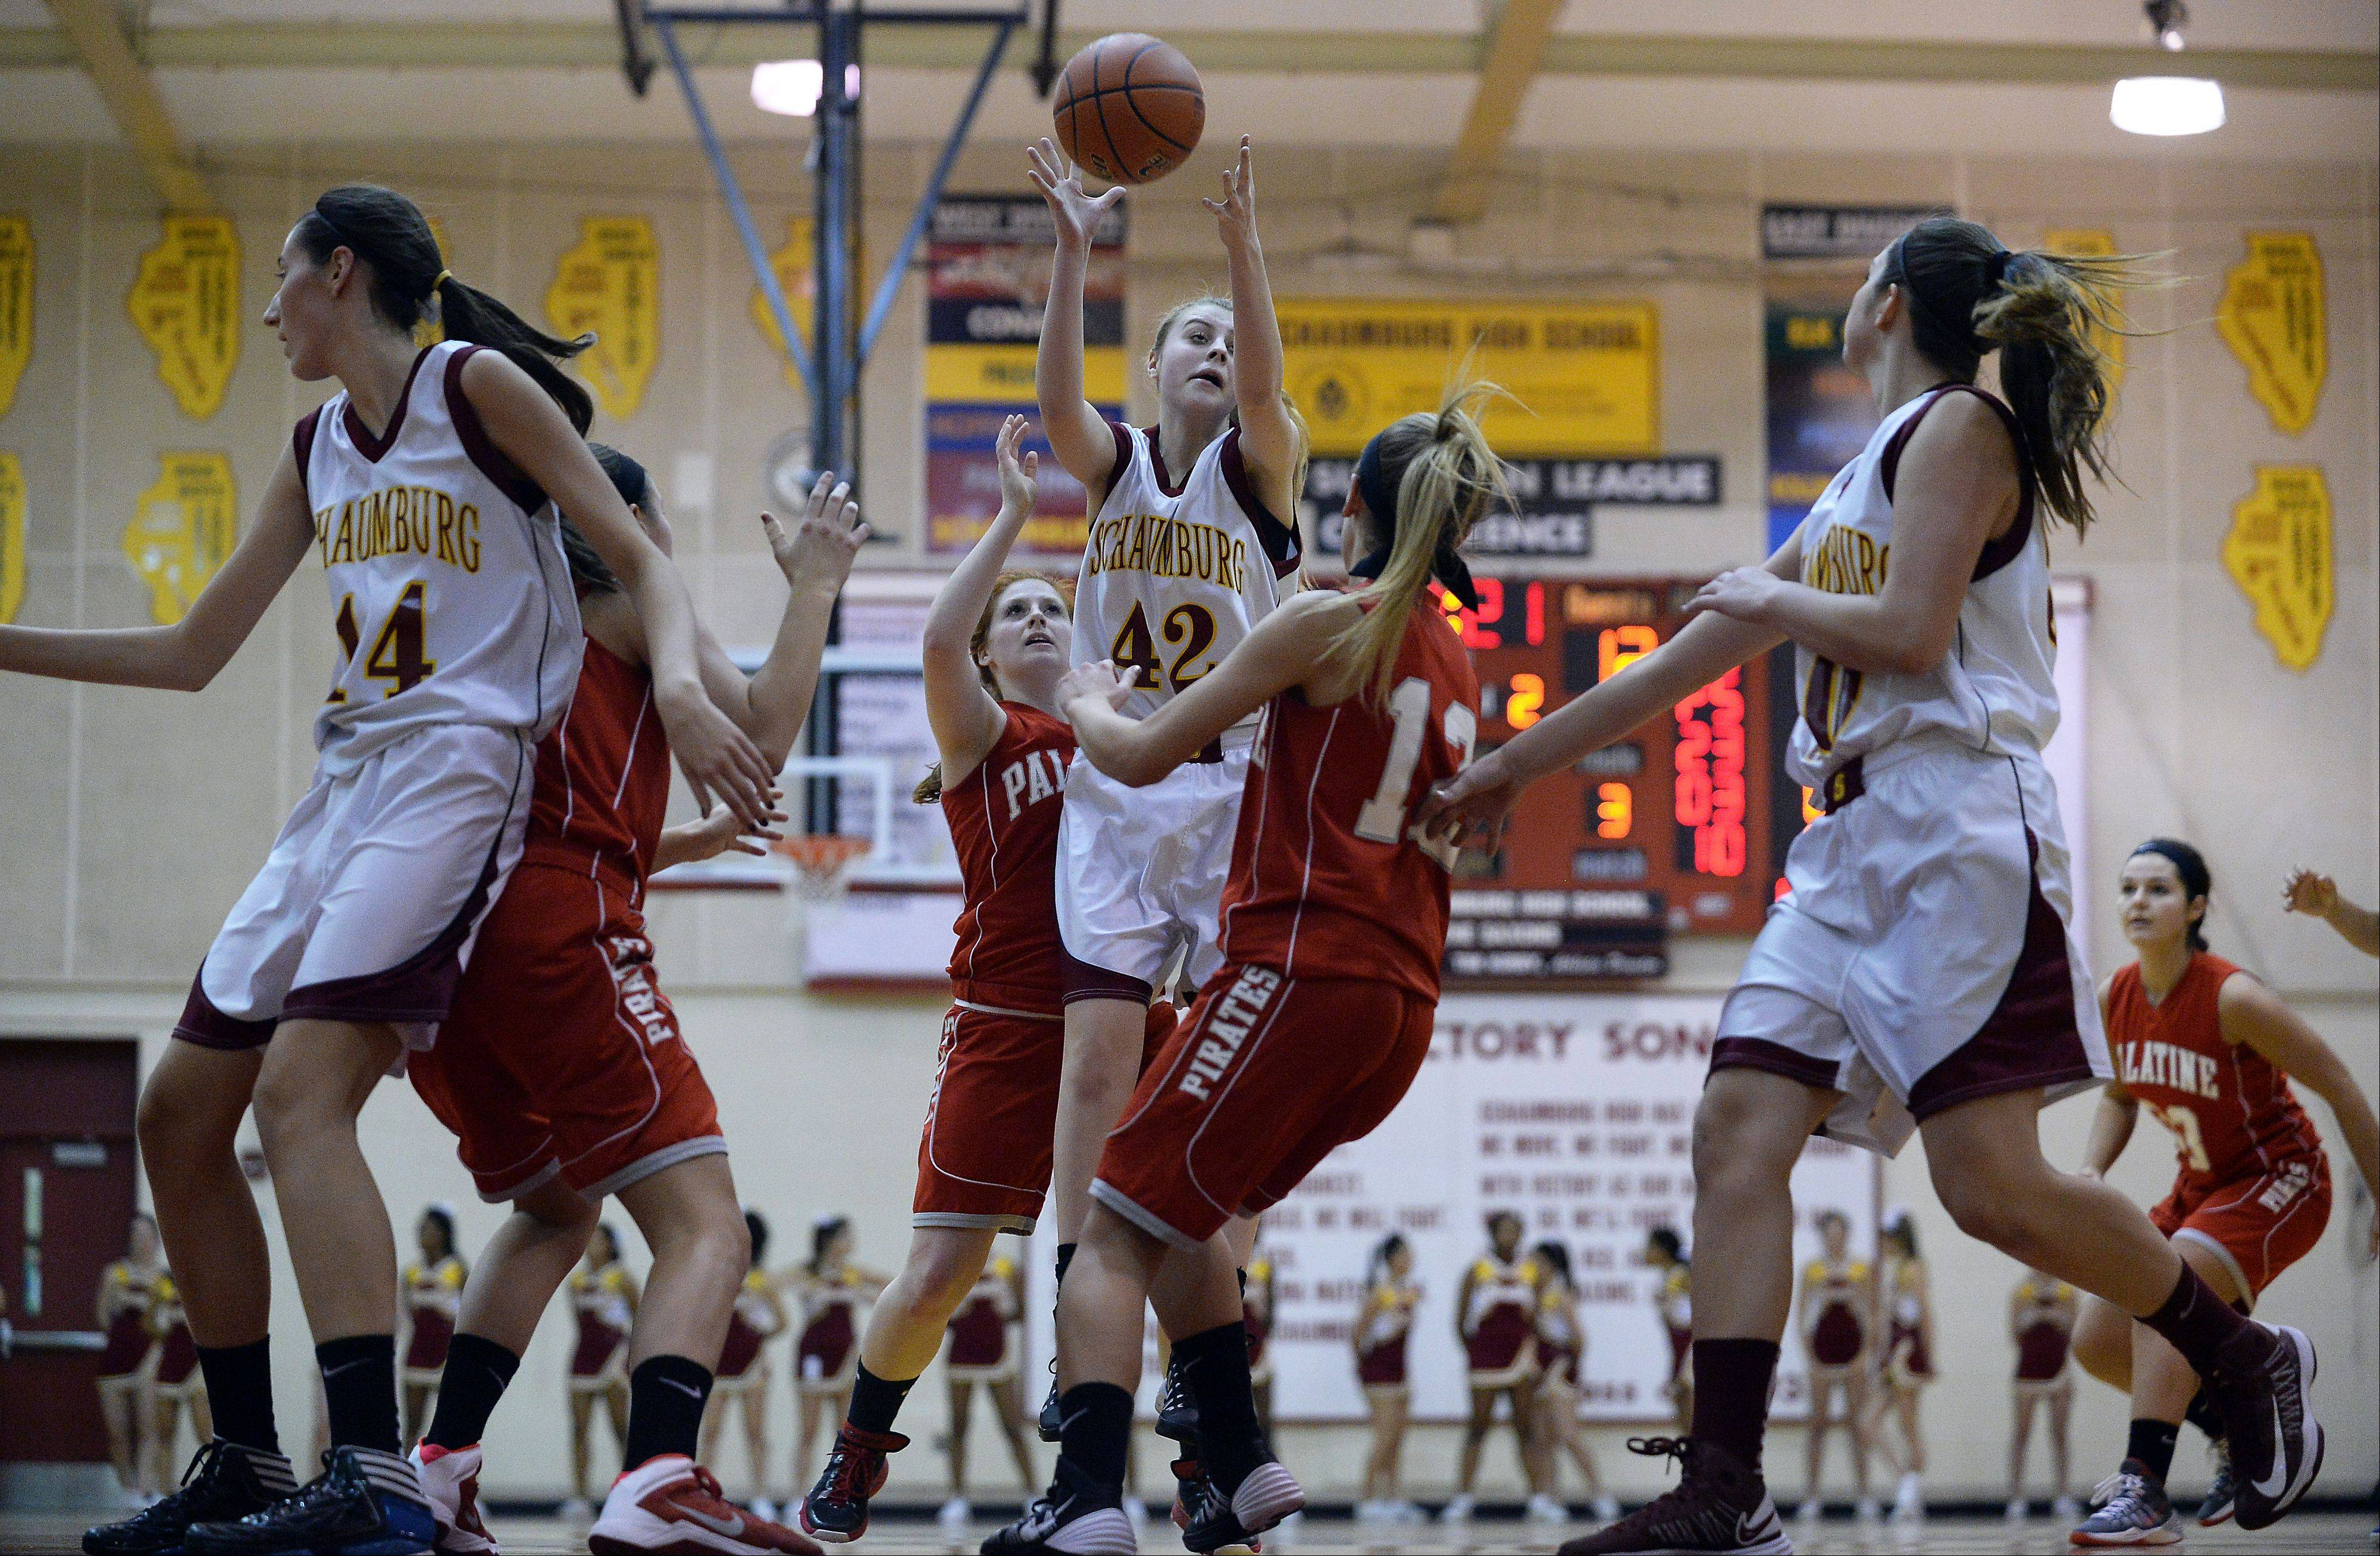 Schaumburg�s Mallory Gerber pulls down a rebound in the first half.